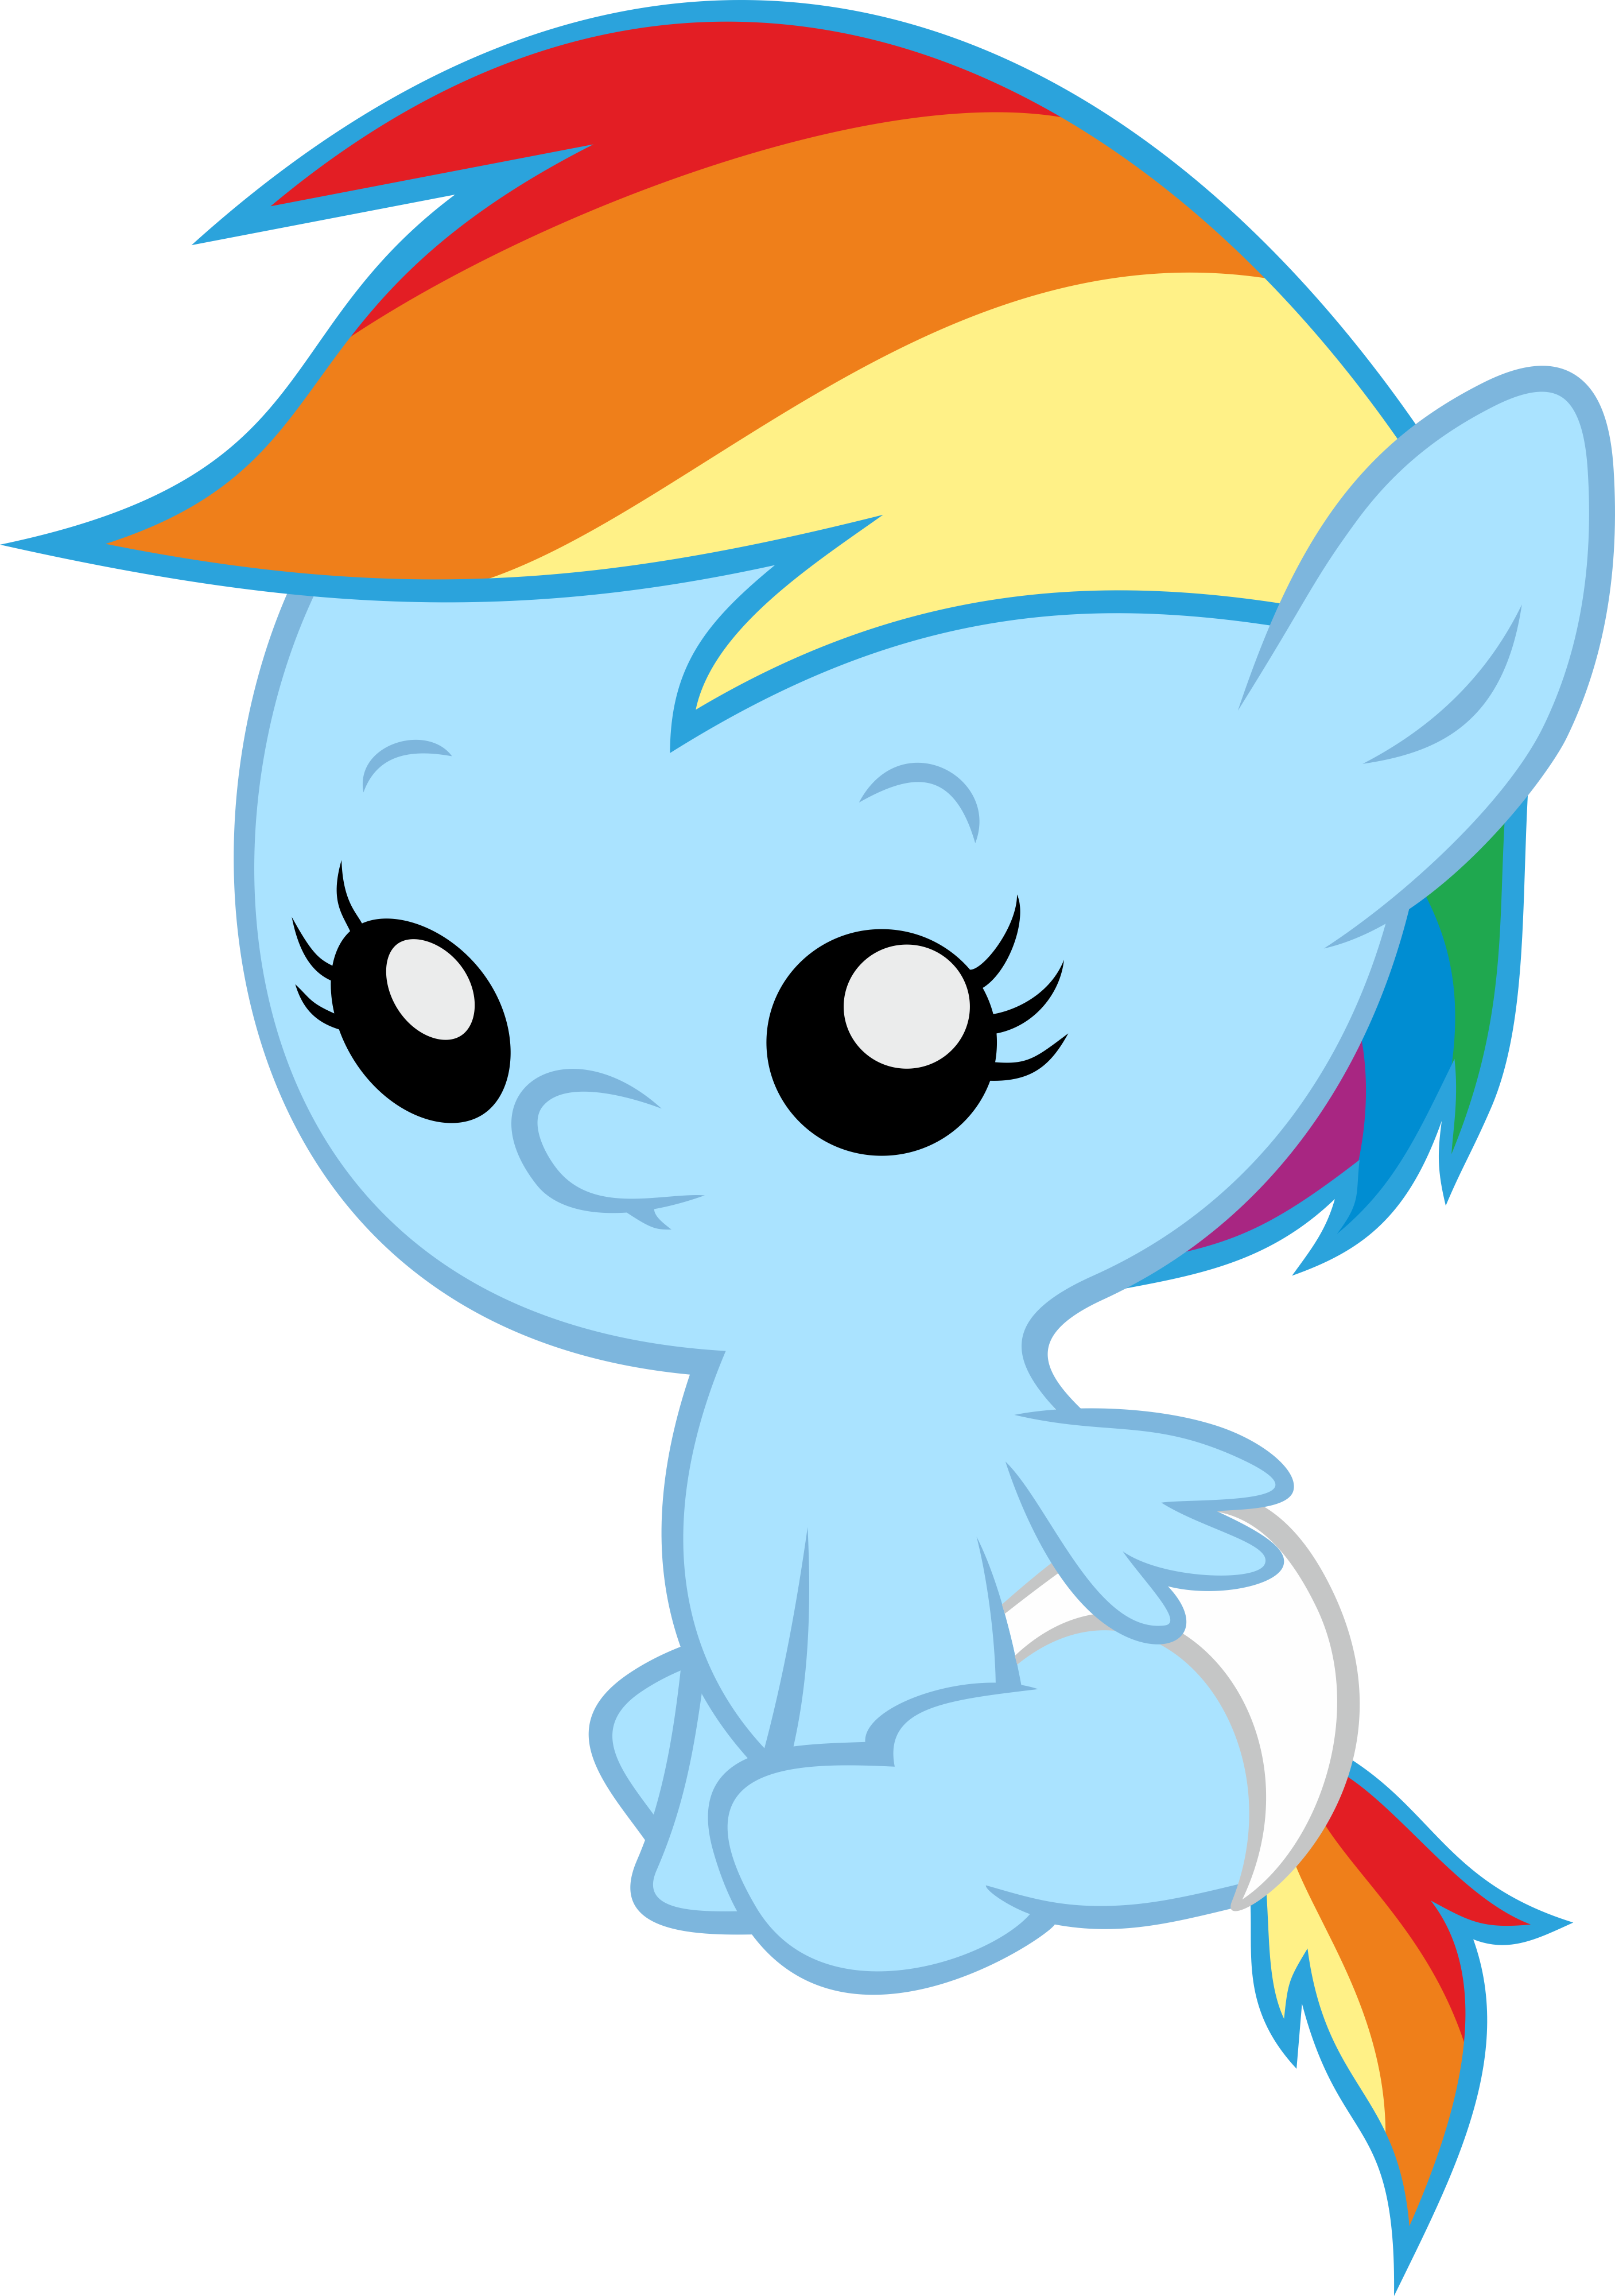 - Baby_dash_by_stardustxiii-d4hdmpt.png 2,814×4,000 Pixels My